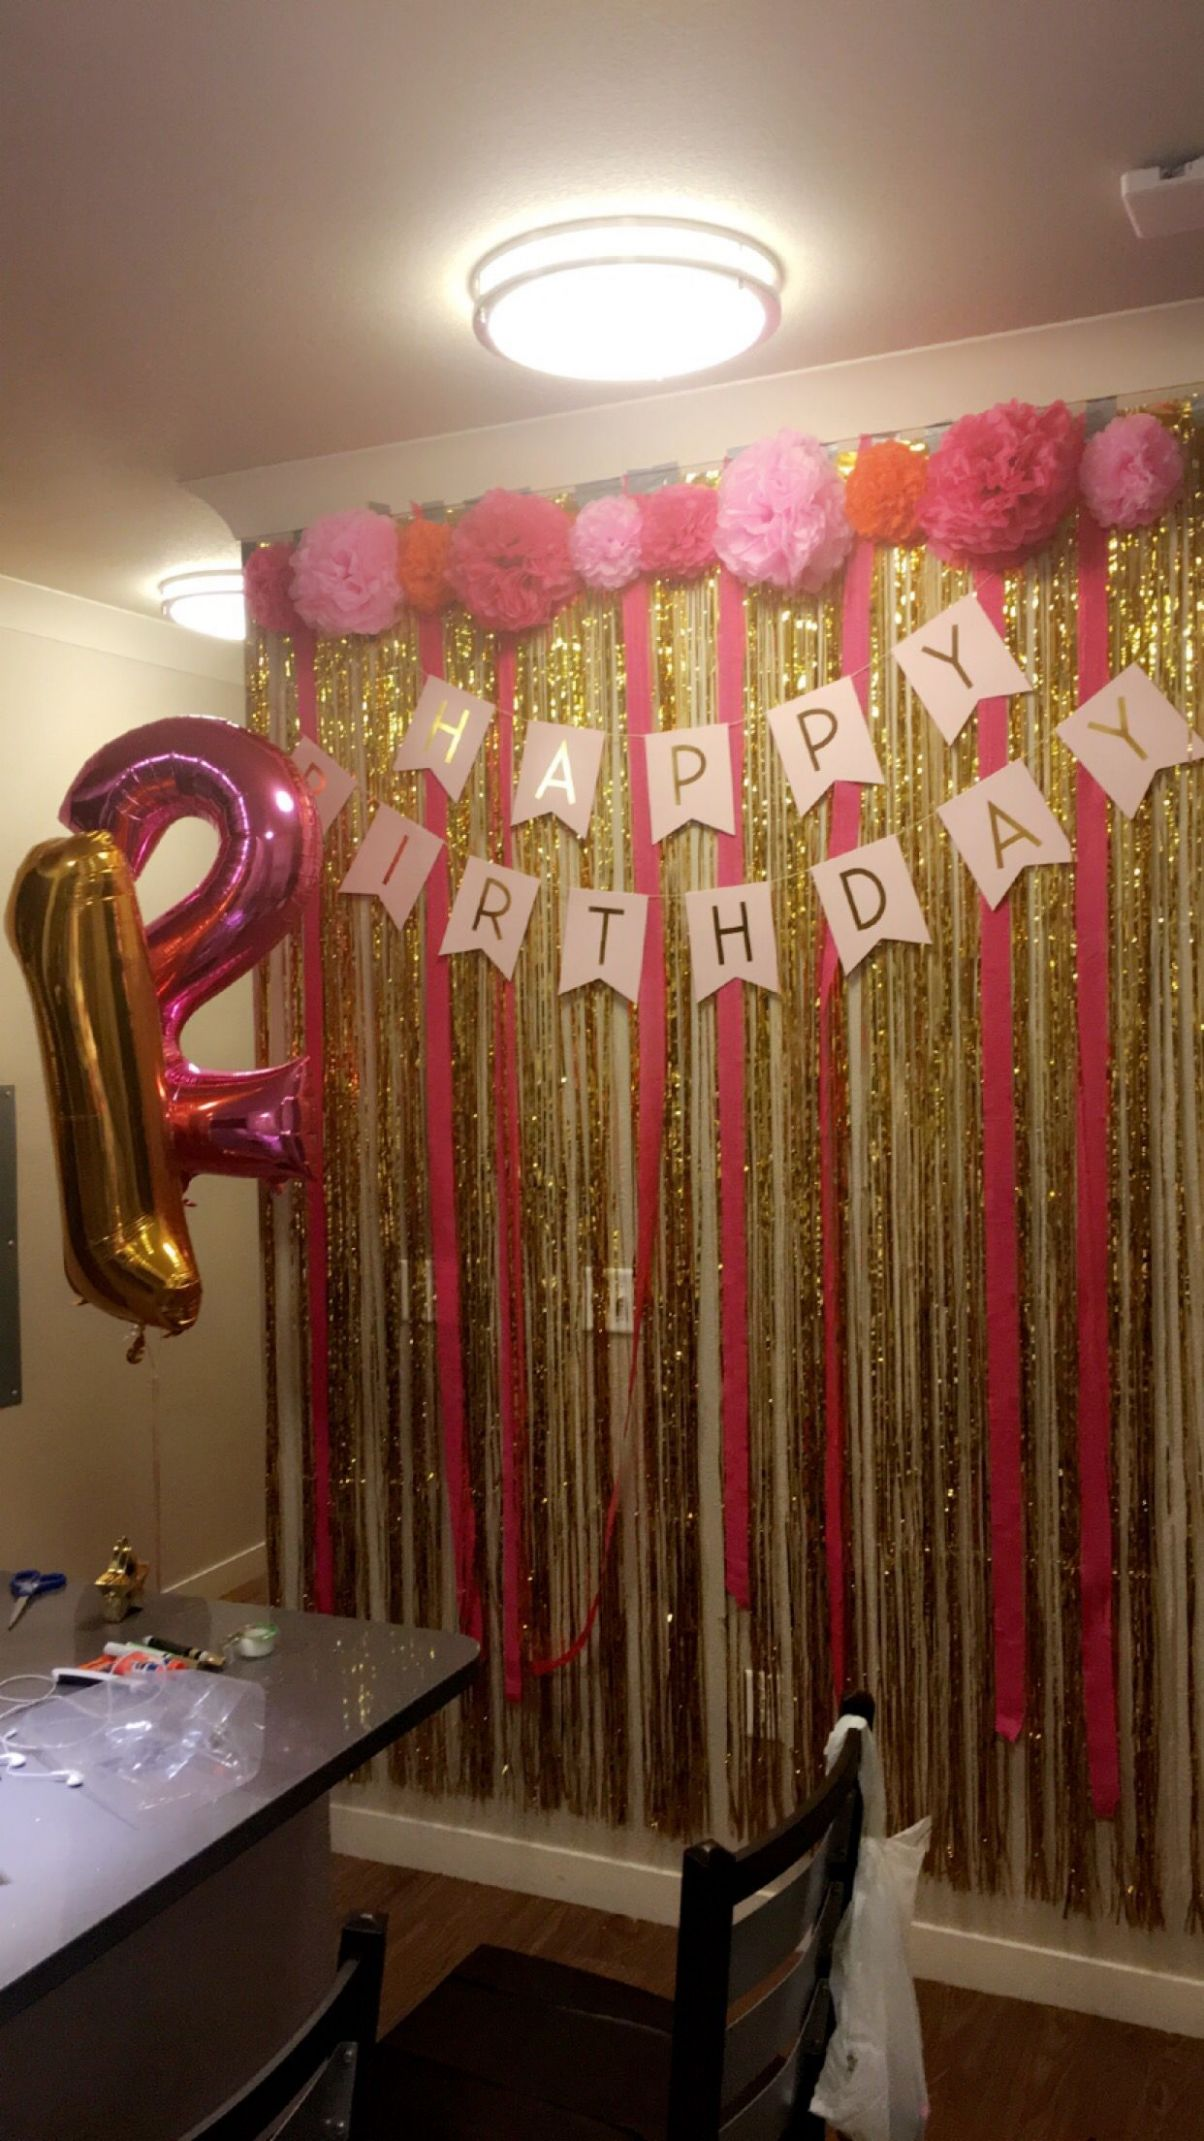 8st birthday wall all bought entirely on Amazon (Pinterest ..